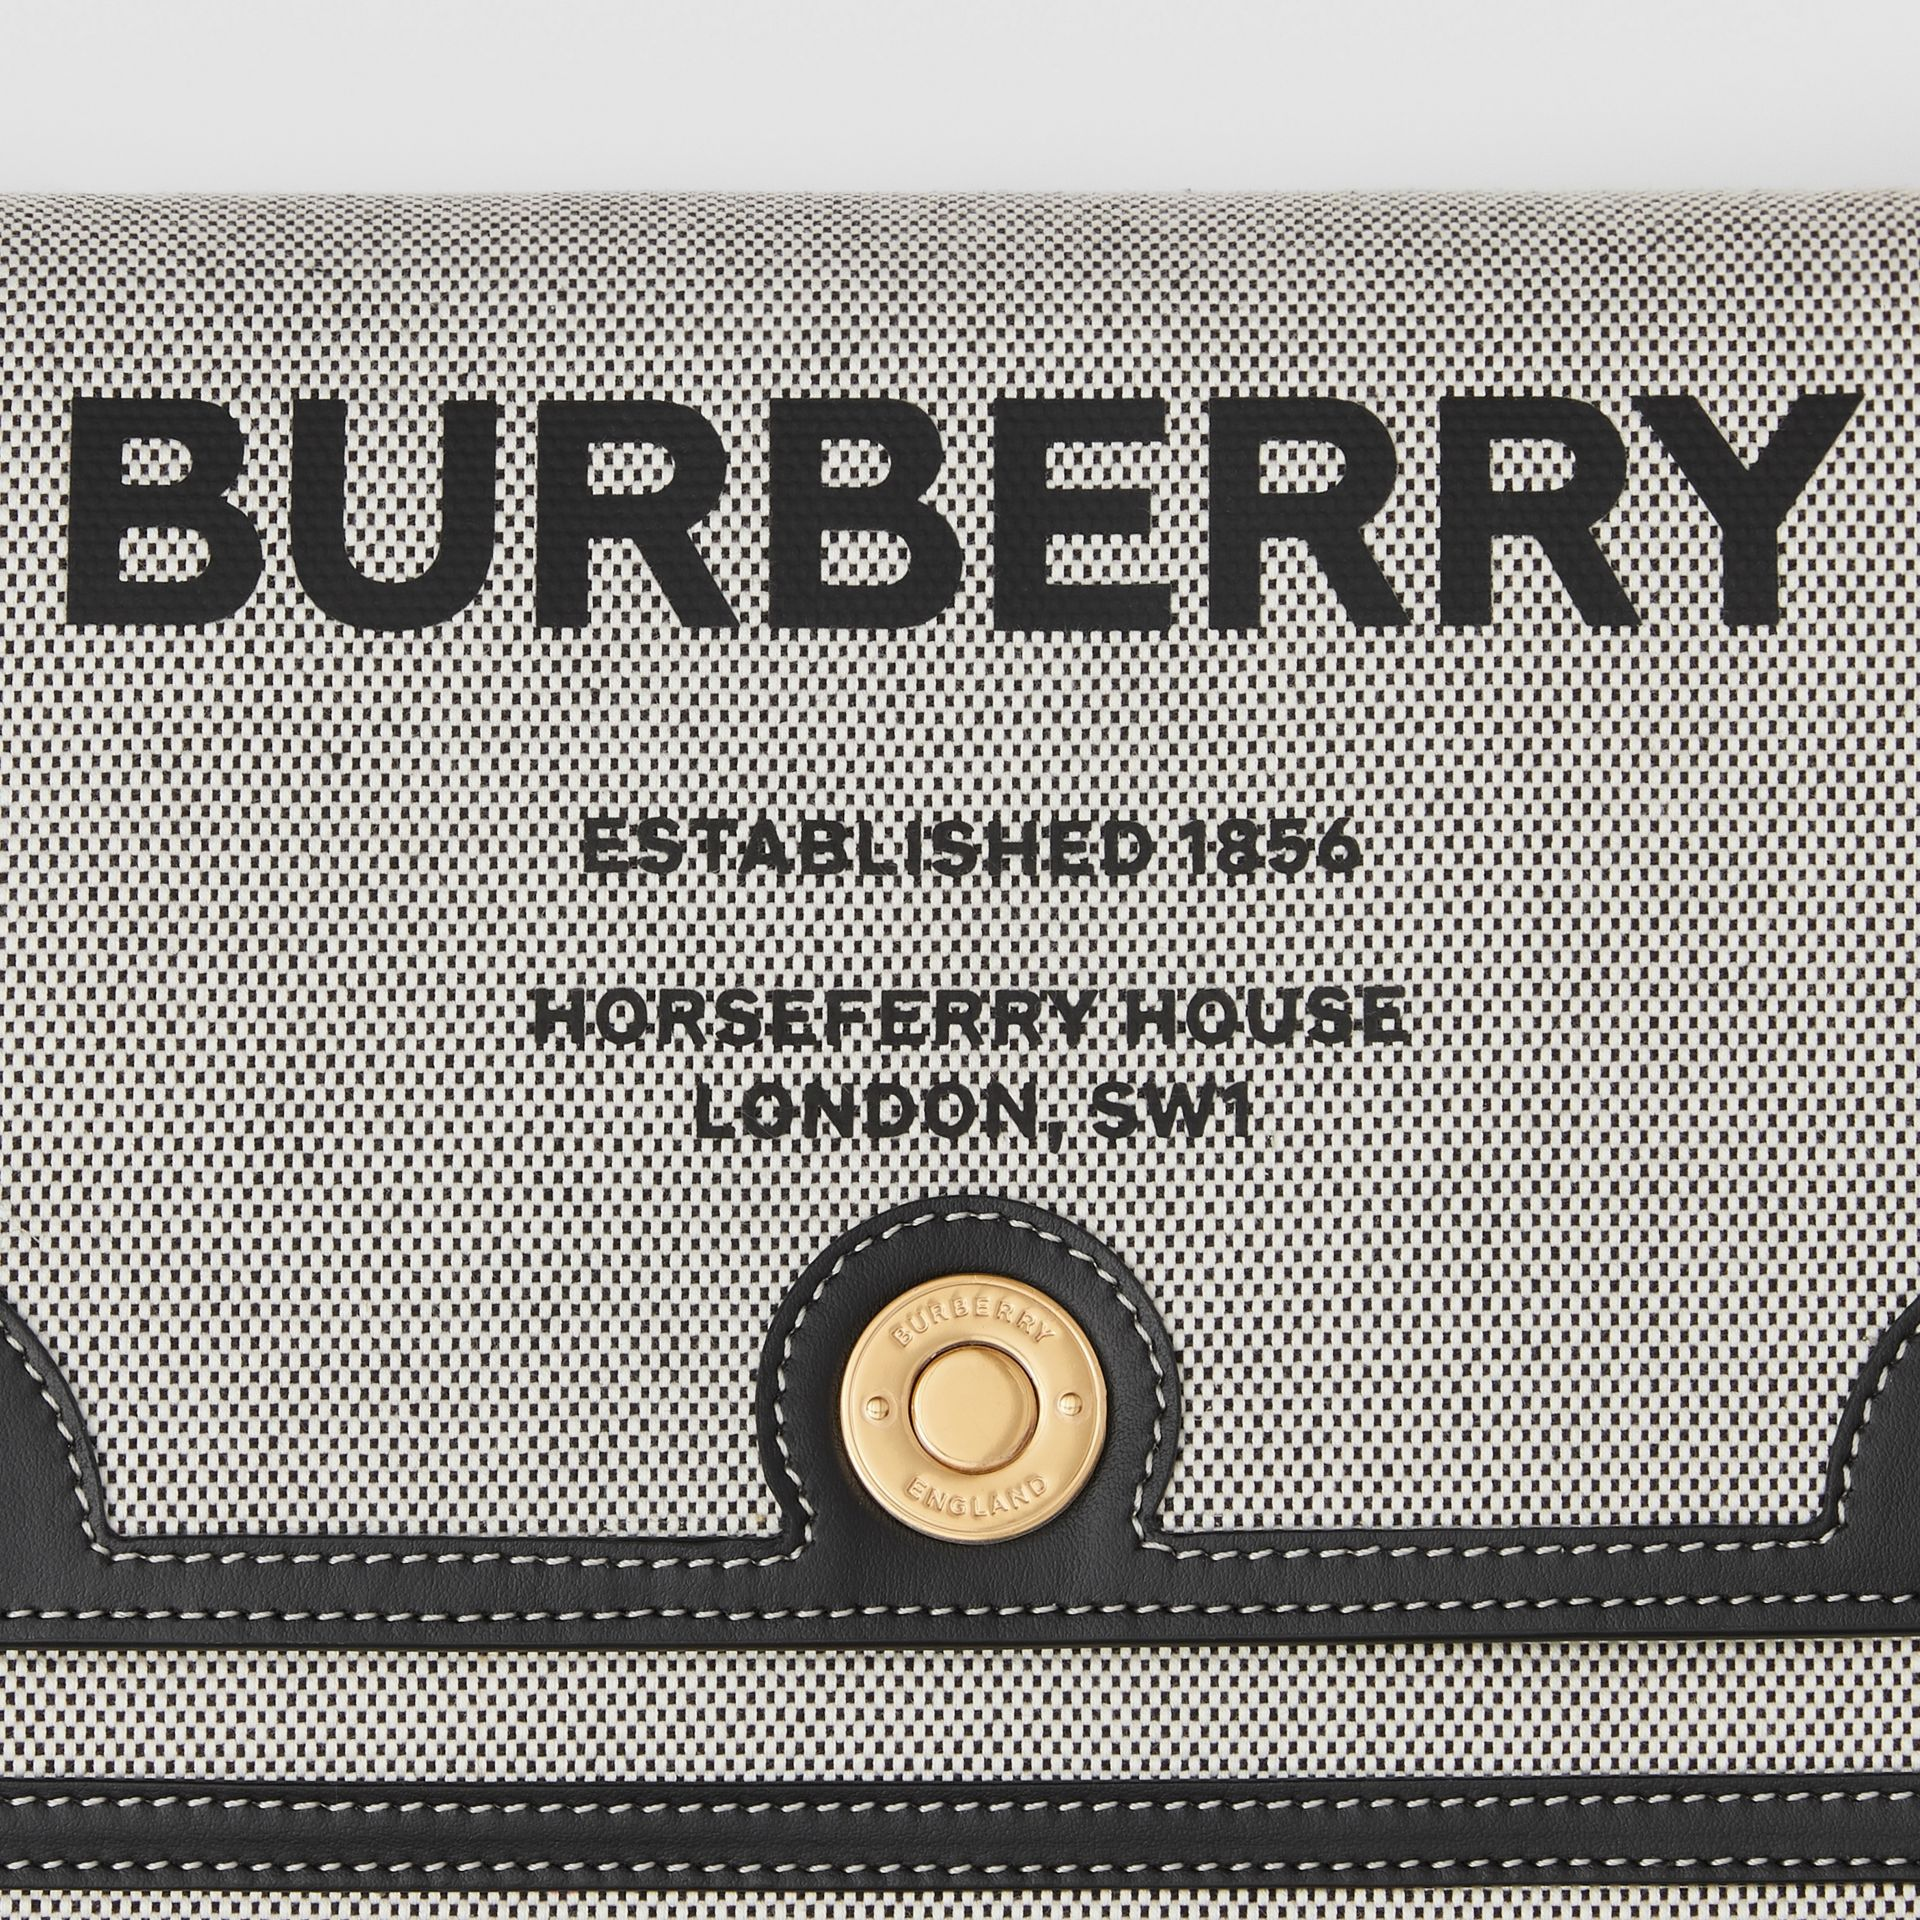 Horseferry Print Canvas Note Crossbody Bag in Black/black/tan - Women | Burberry - gallery image 1